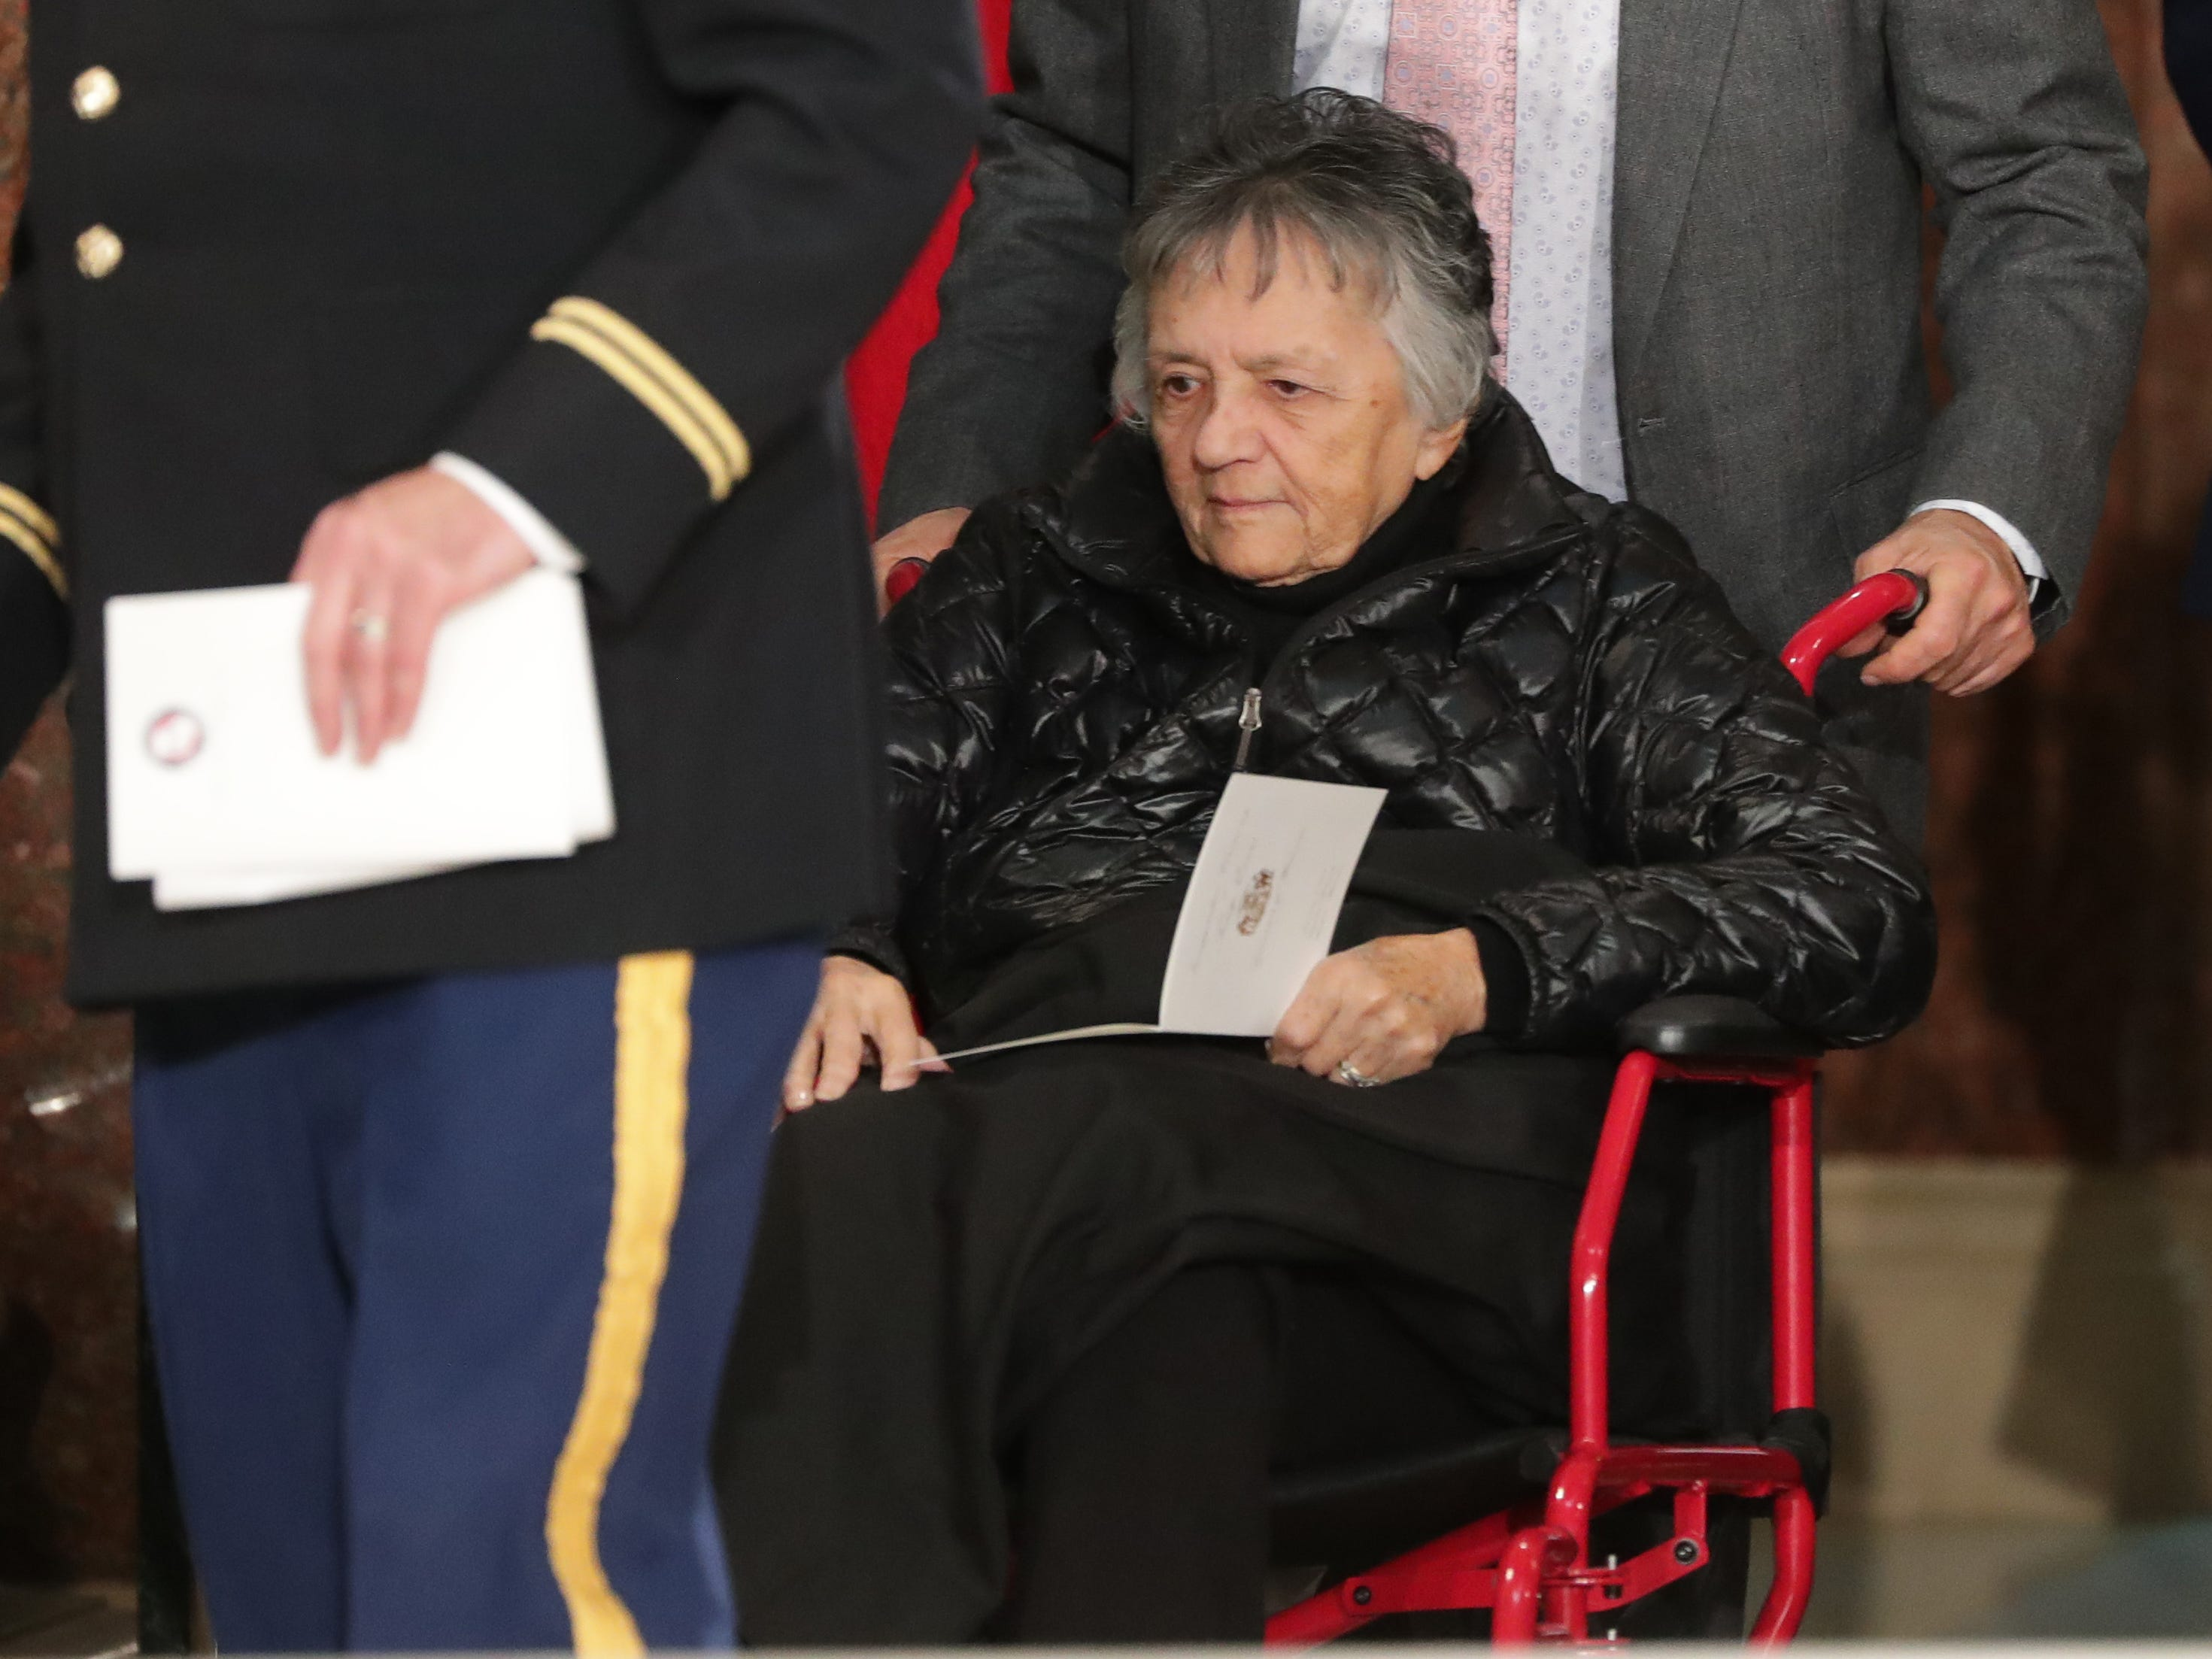 Associate Justice of the Wisconsin Supreme Court Shirley Abrahamson is shown before the inauguration for the state's constitutional officers at the Capitol in Madison, Wis.